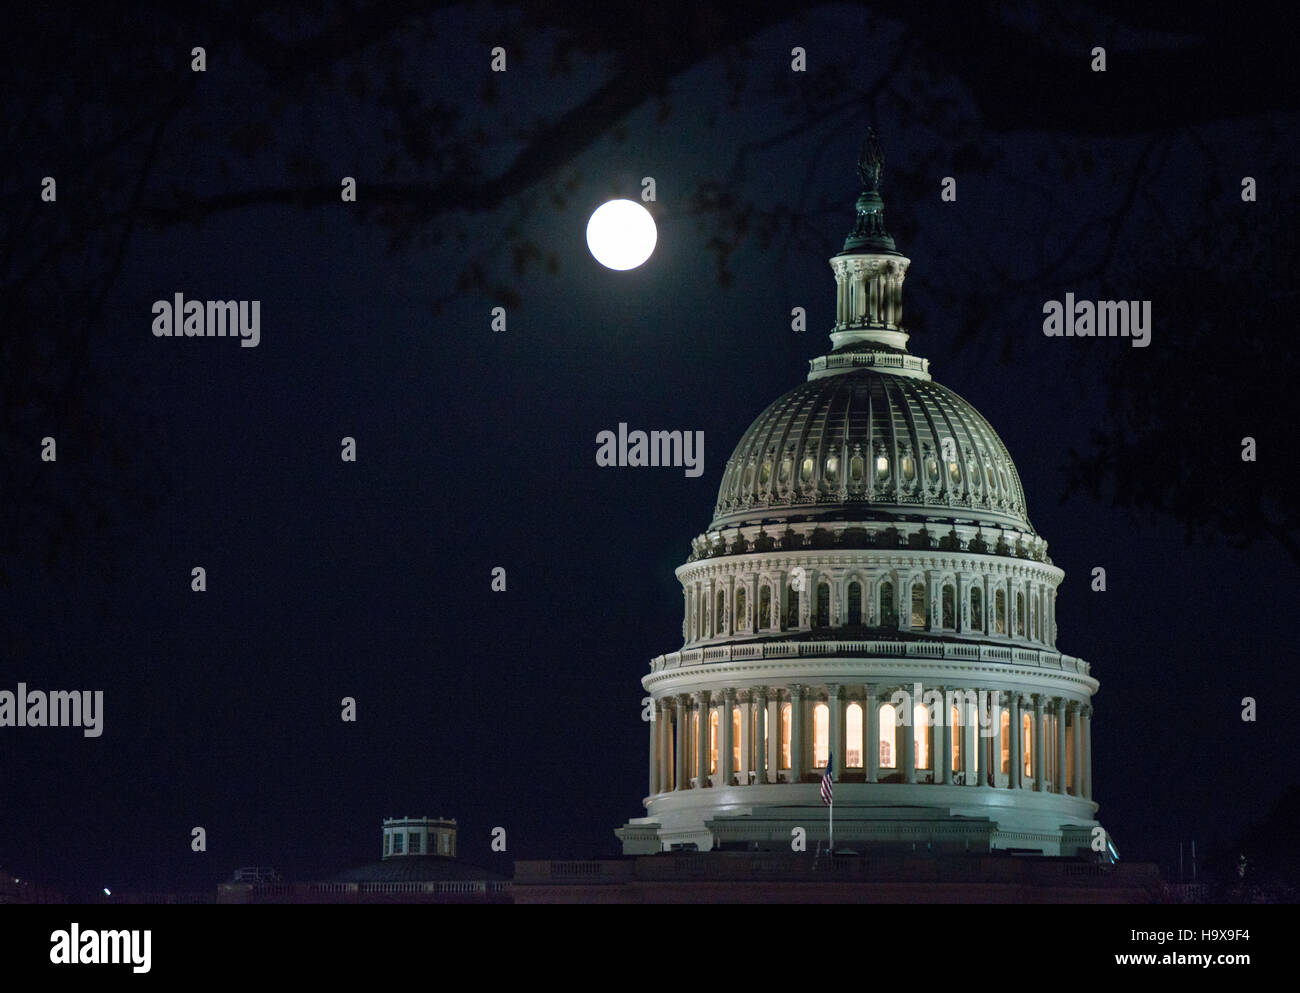 A full moon rises over the U.S. Capitol building November 13, 2016 in Washington, DC. The moon appears 30 percent - Stock Image